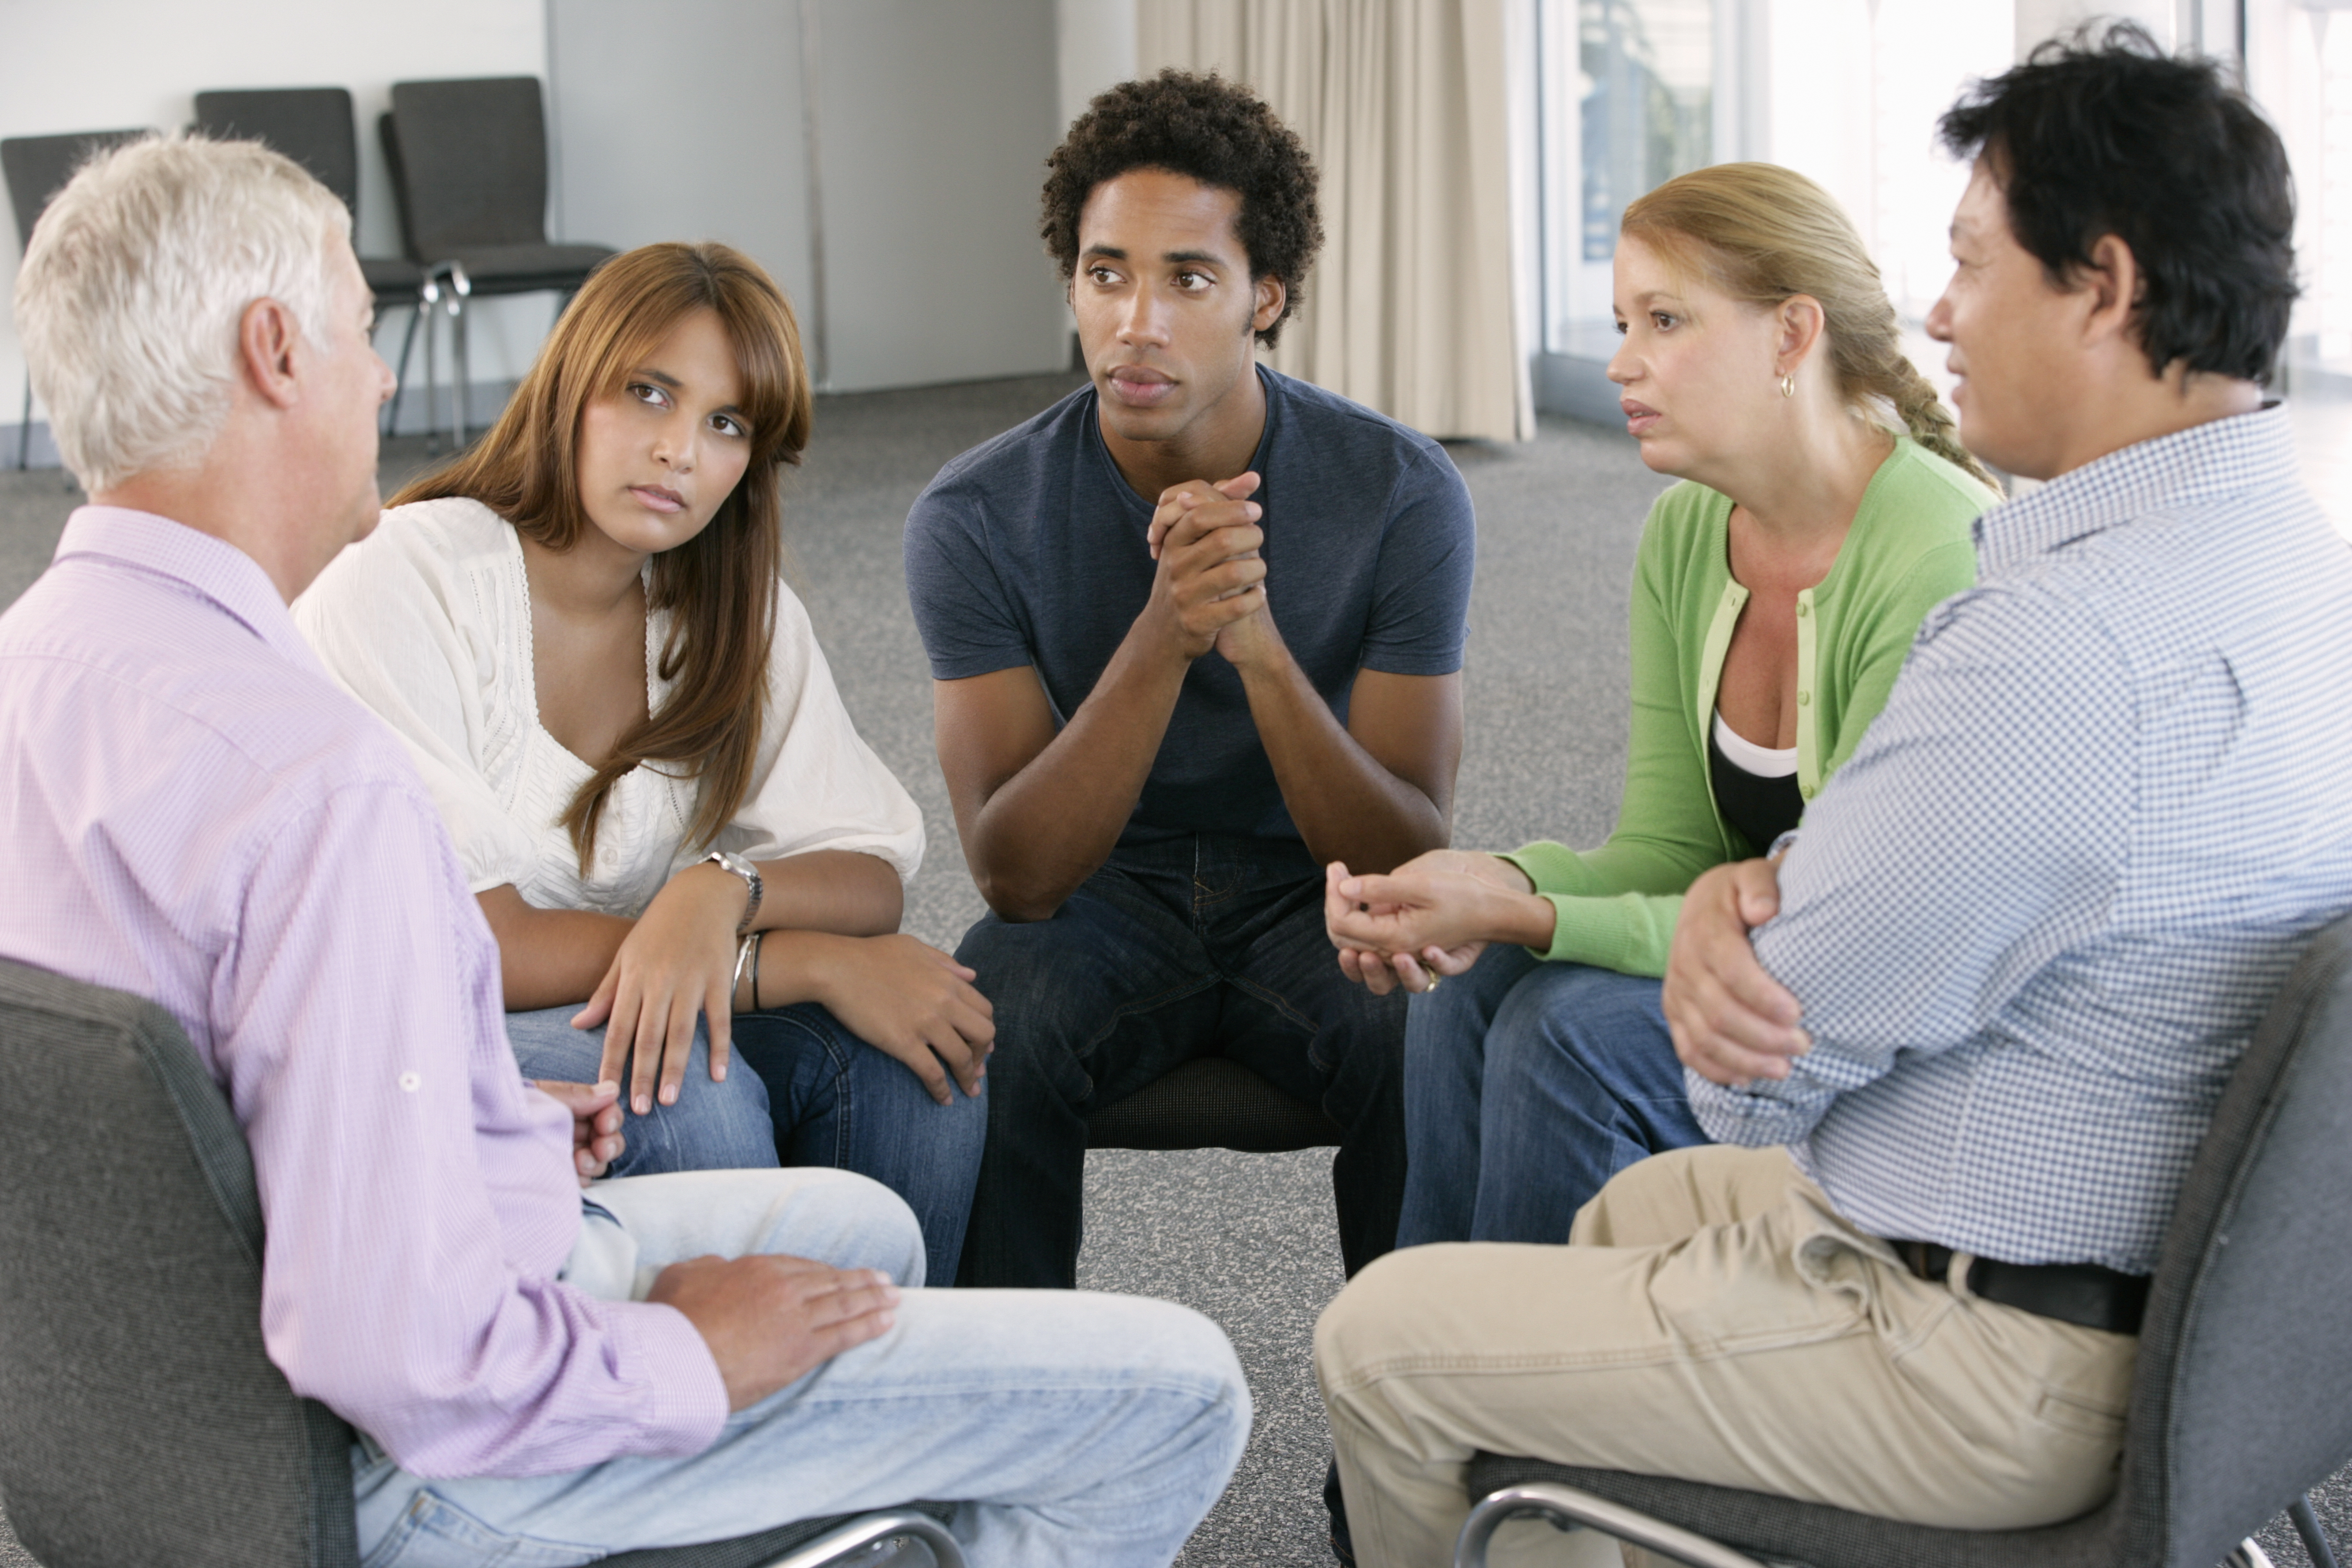 Meeting Of Support Group Listening To Member.